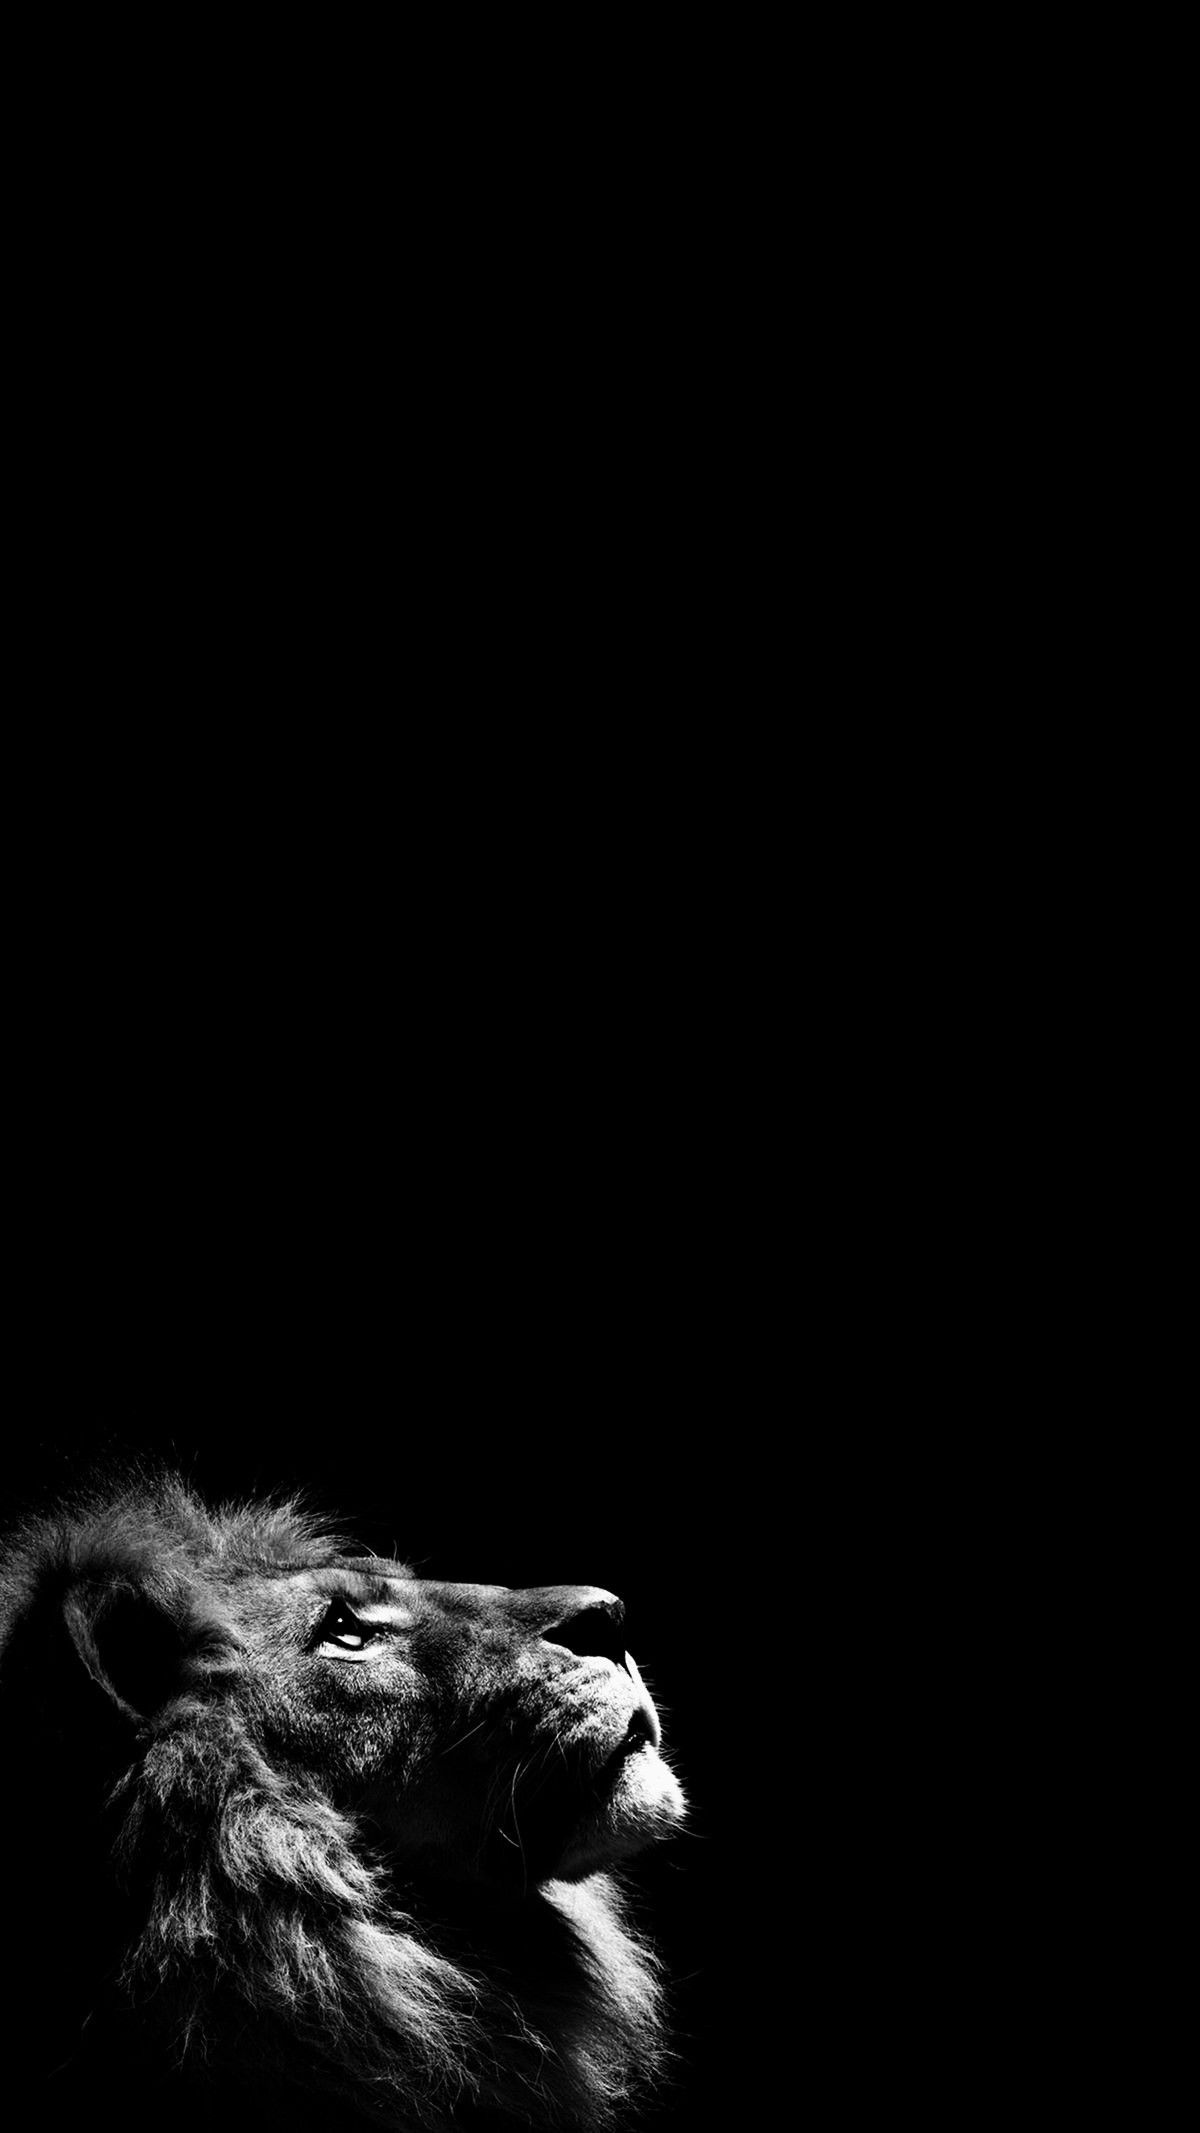 Loyalty And Fearlessness Lion Wallpaper Iphone Black Wallpaper Iphone Dark Wallpaper Iphone